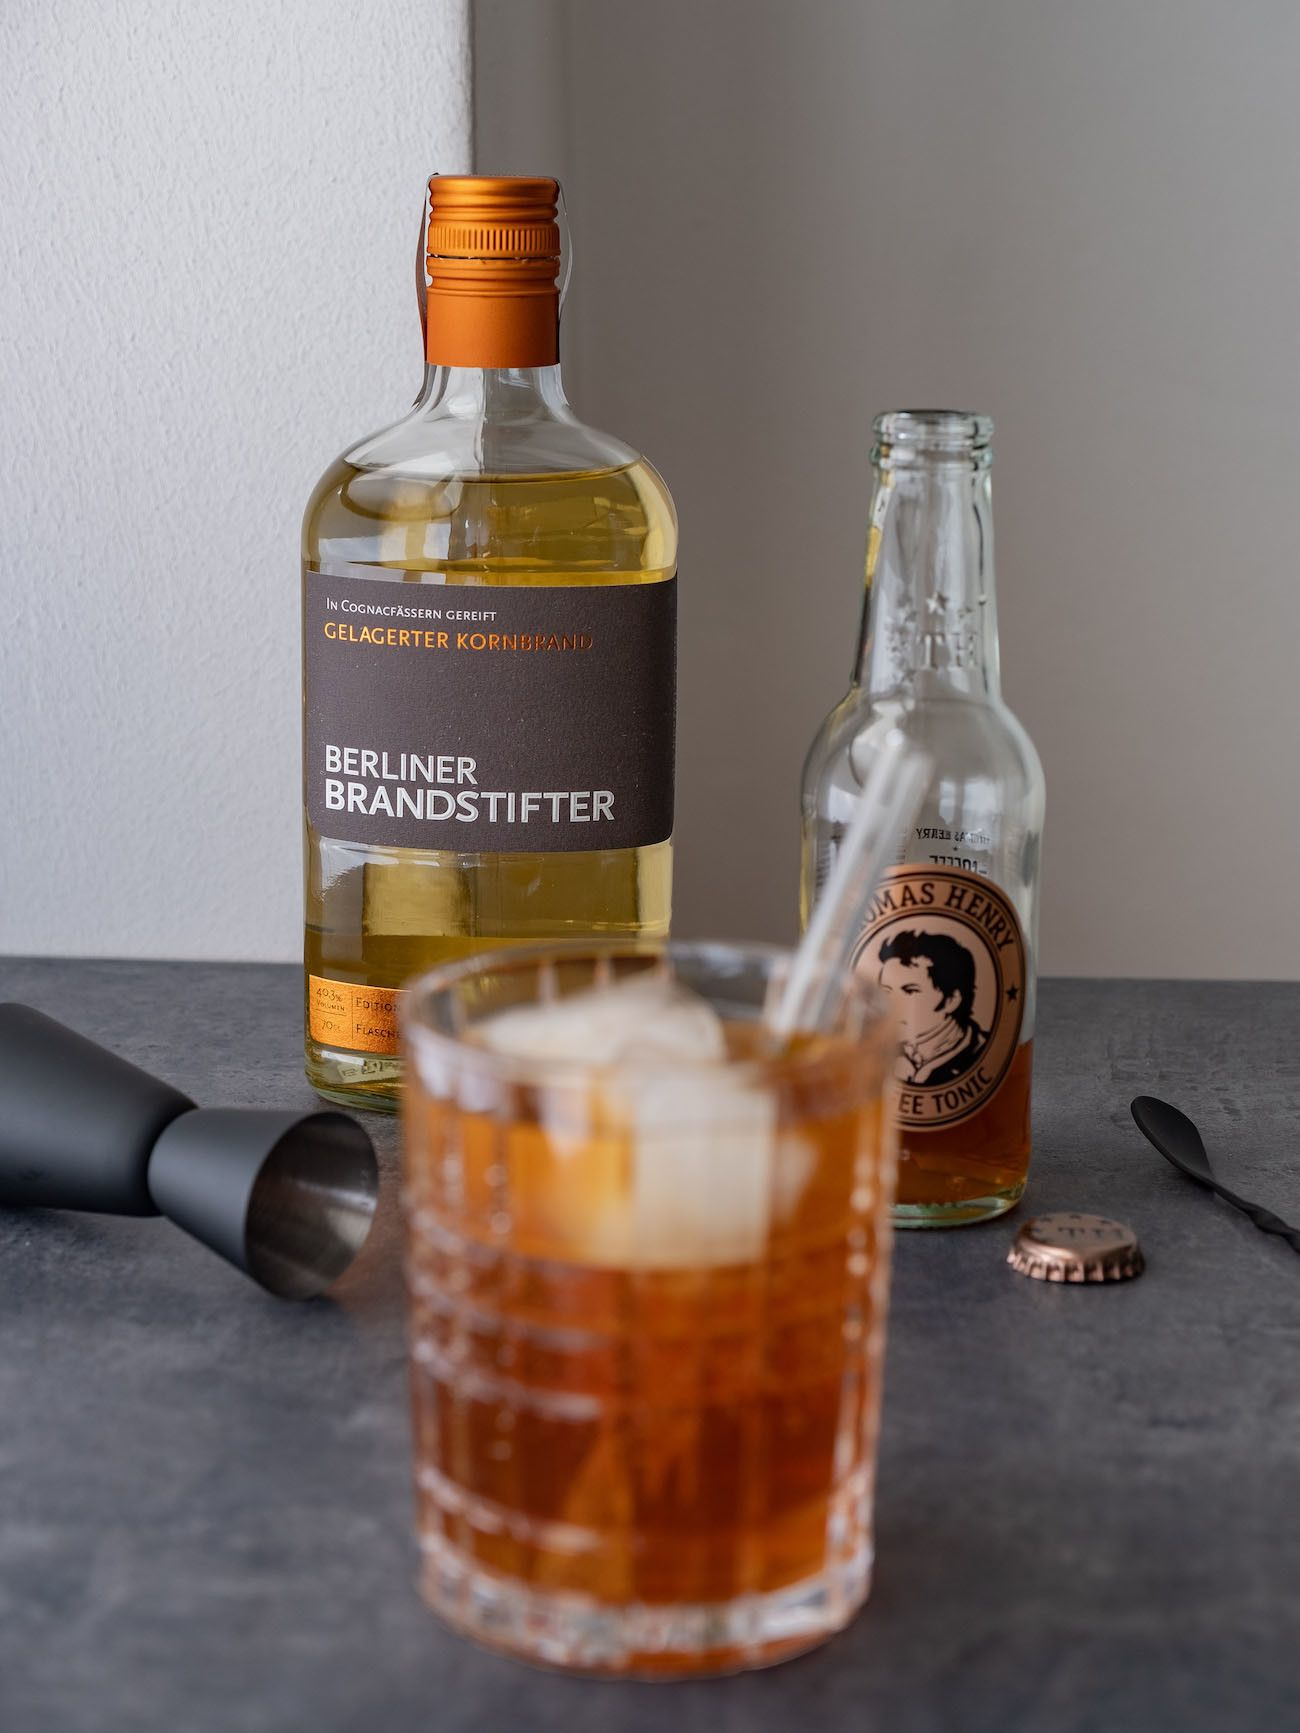 Foodblog, About Fuel, Brandstifter Coffee Tonic, Thomas Henry